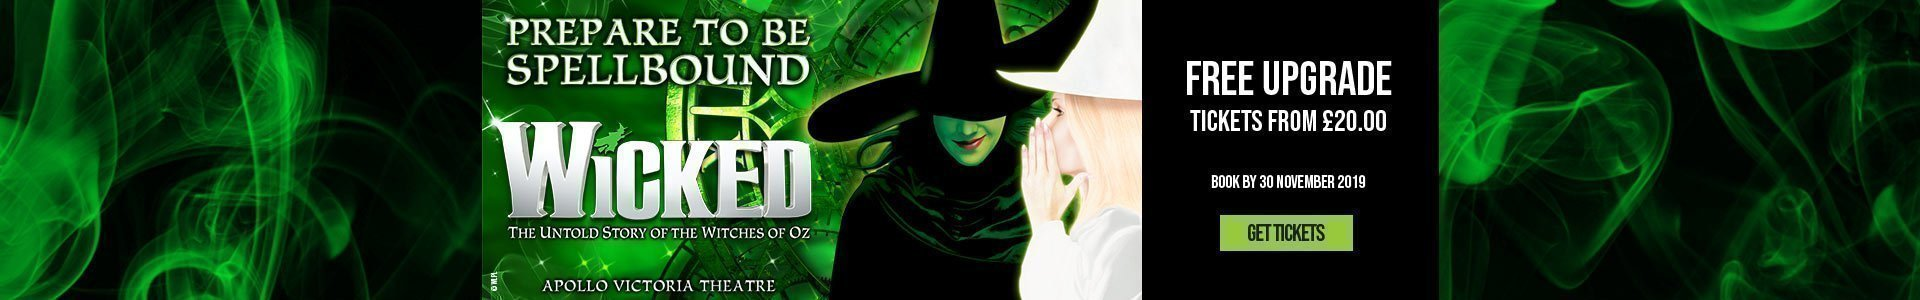 Wicked Tickets - Free Upgrade